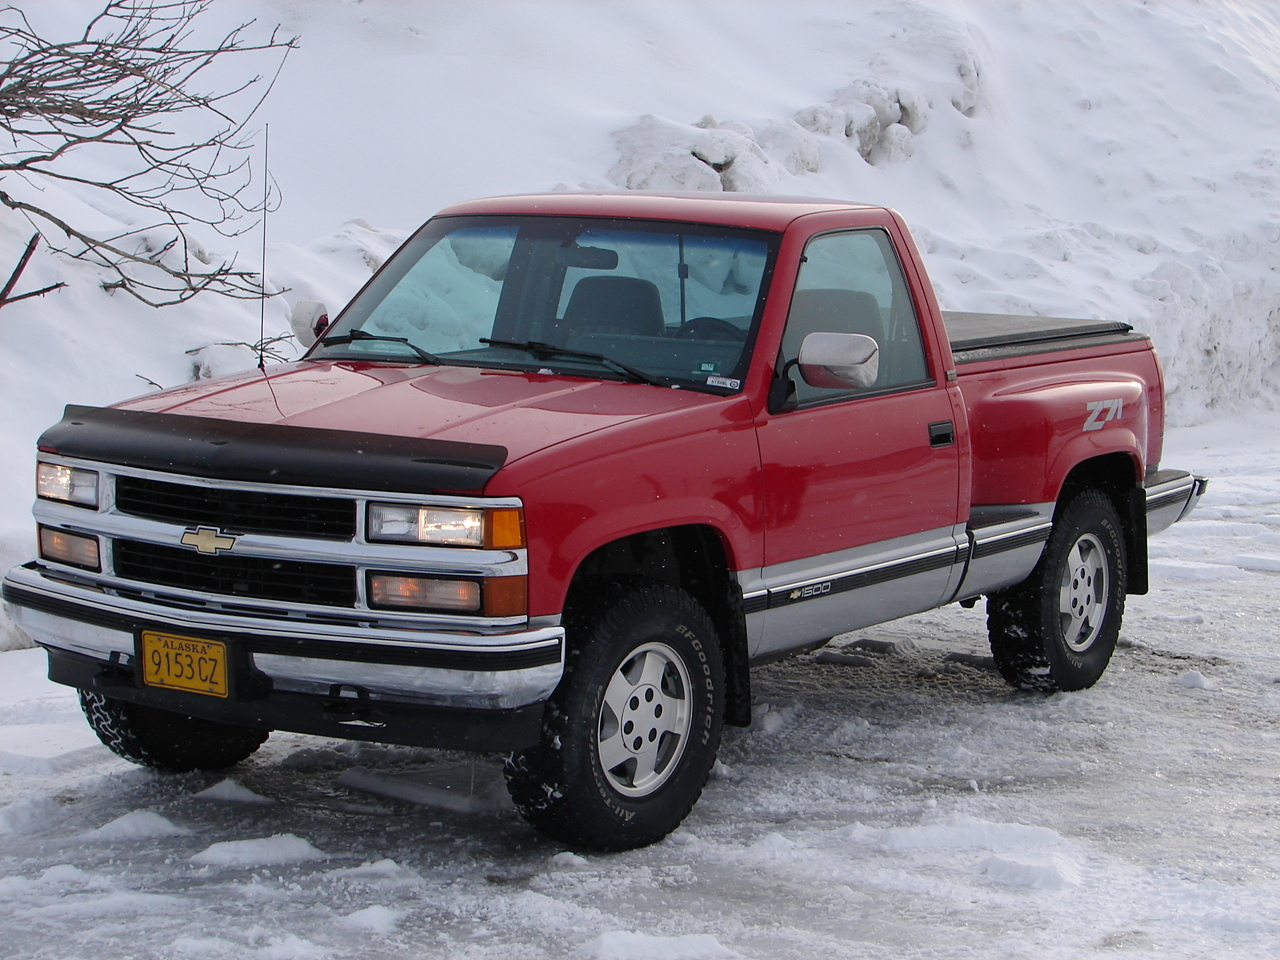 andrew1994 1994 chevrolet silverado 1500 regular cab specs photos modification info at cardomain. Black Bedroom Furniture Sets. Home Design Ideas